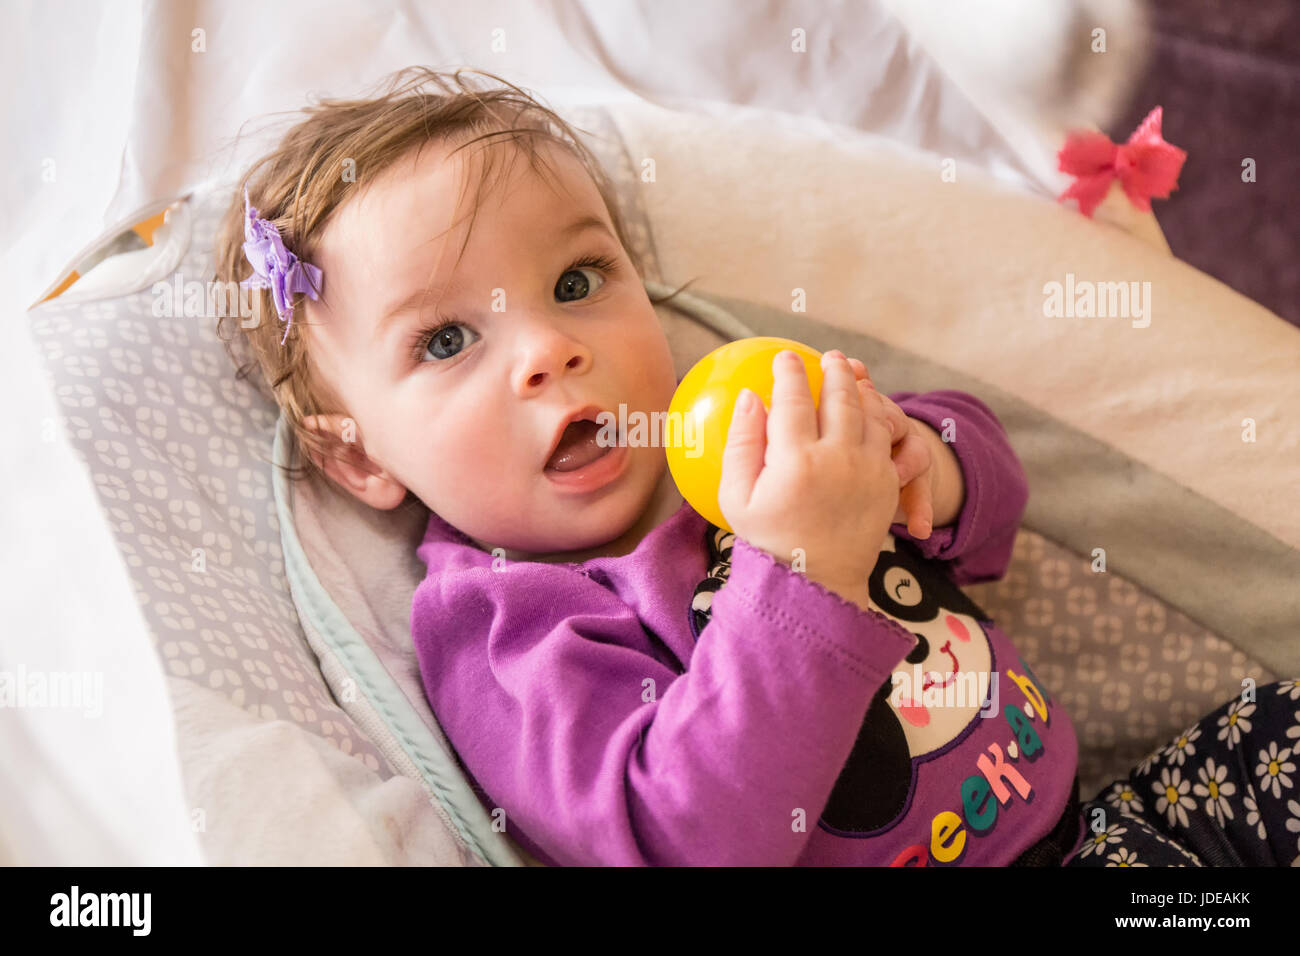 Six month old baby girl playing with a yellow plastic ball in her swing - Stock Image